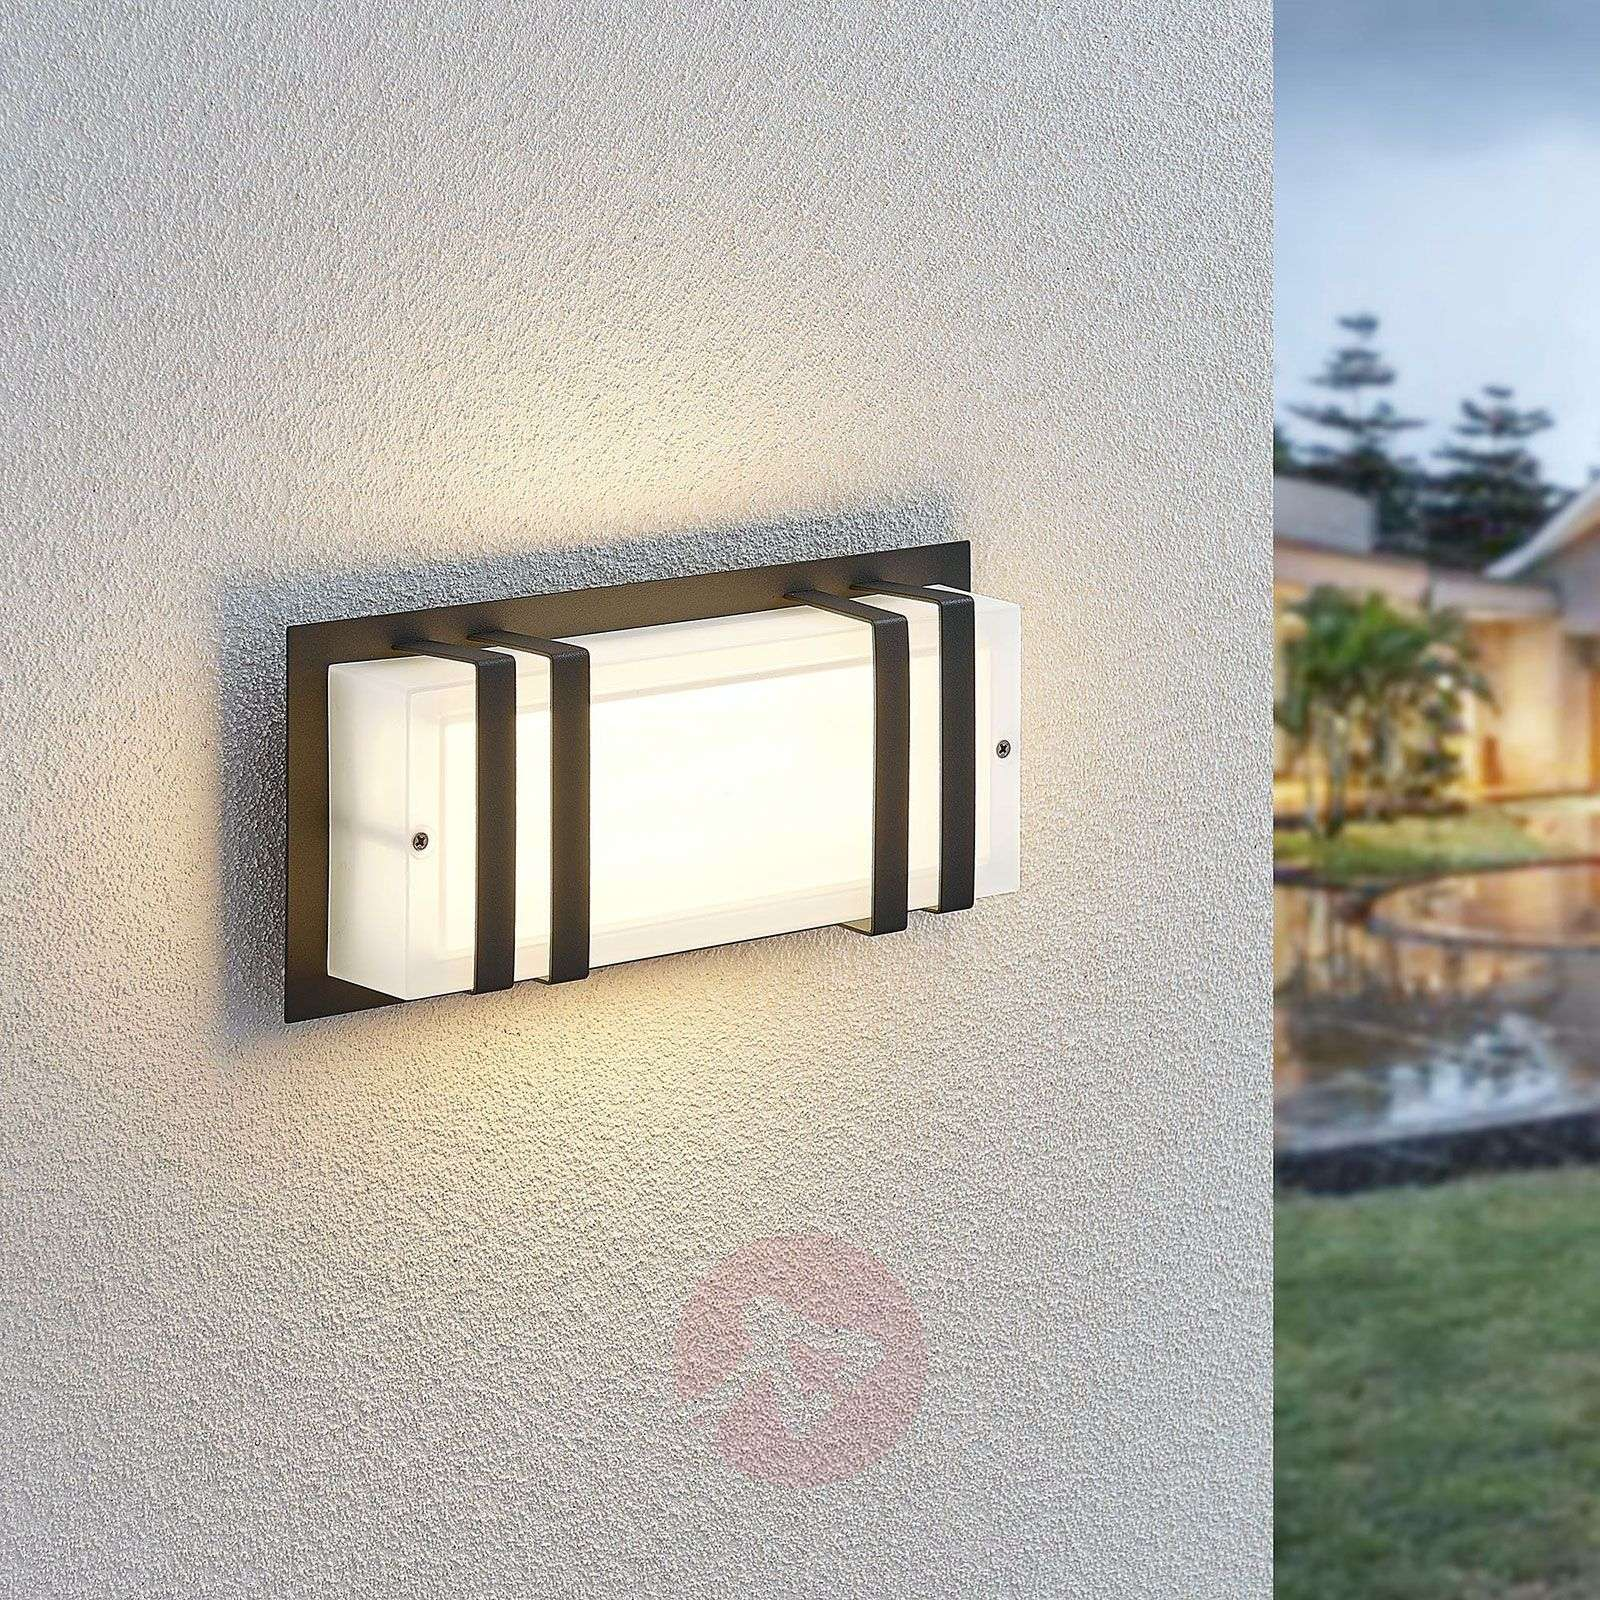 Aplique LED Paice, angular, blanco escarchado-9630082-02